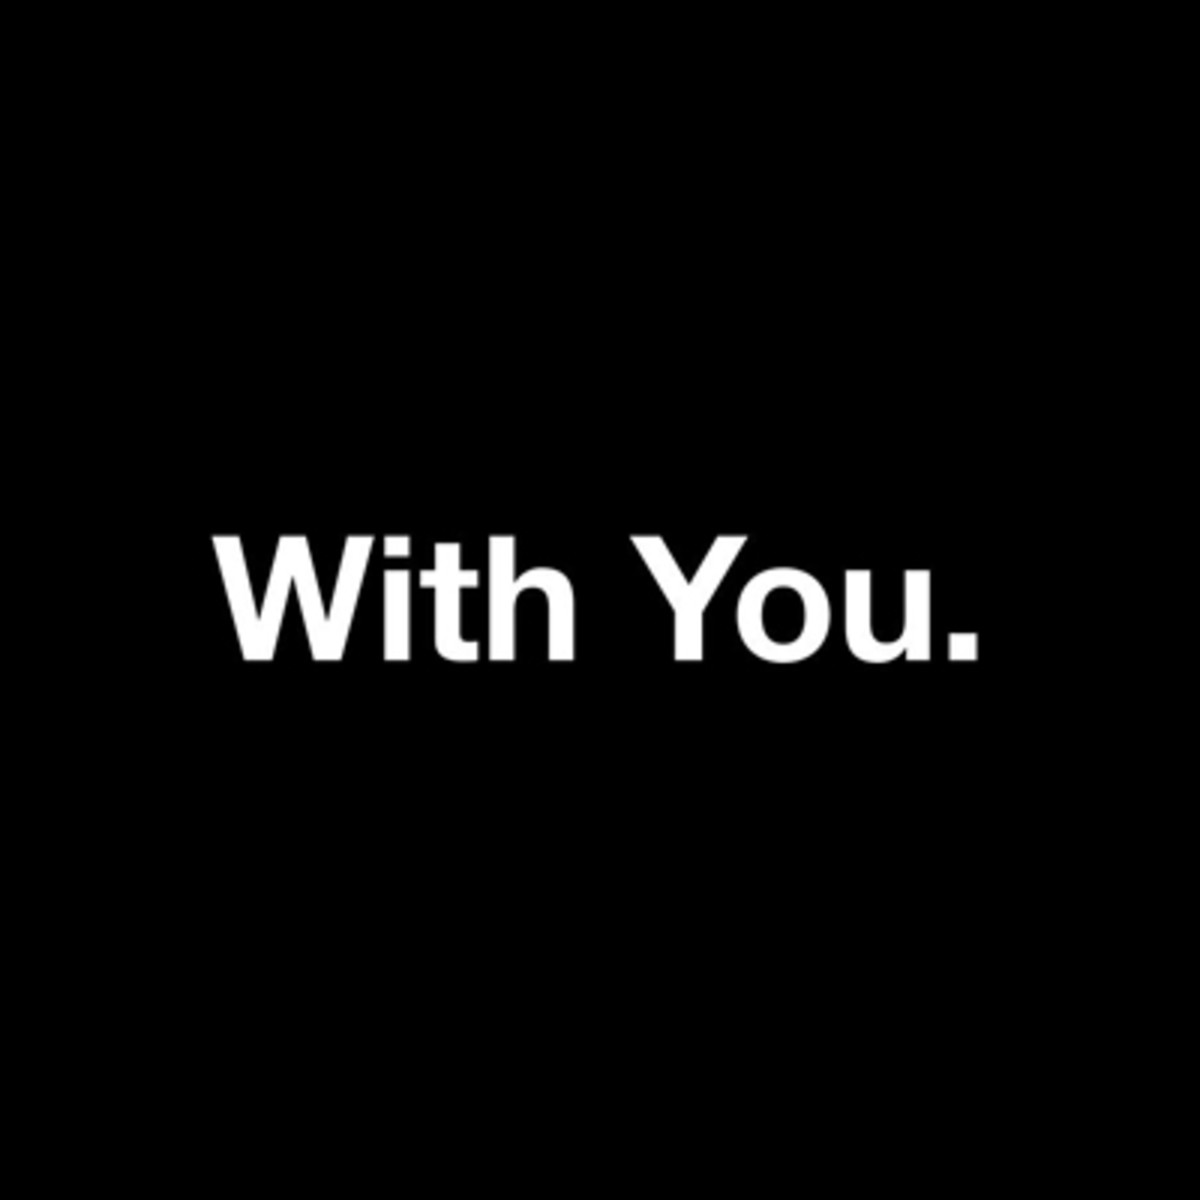 with-you.jpg